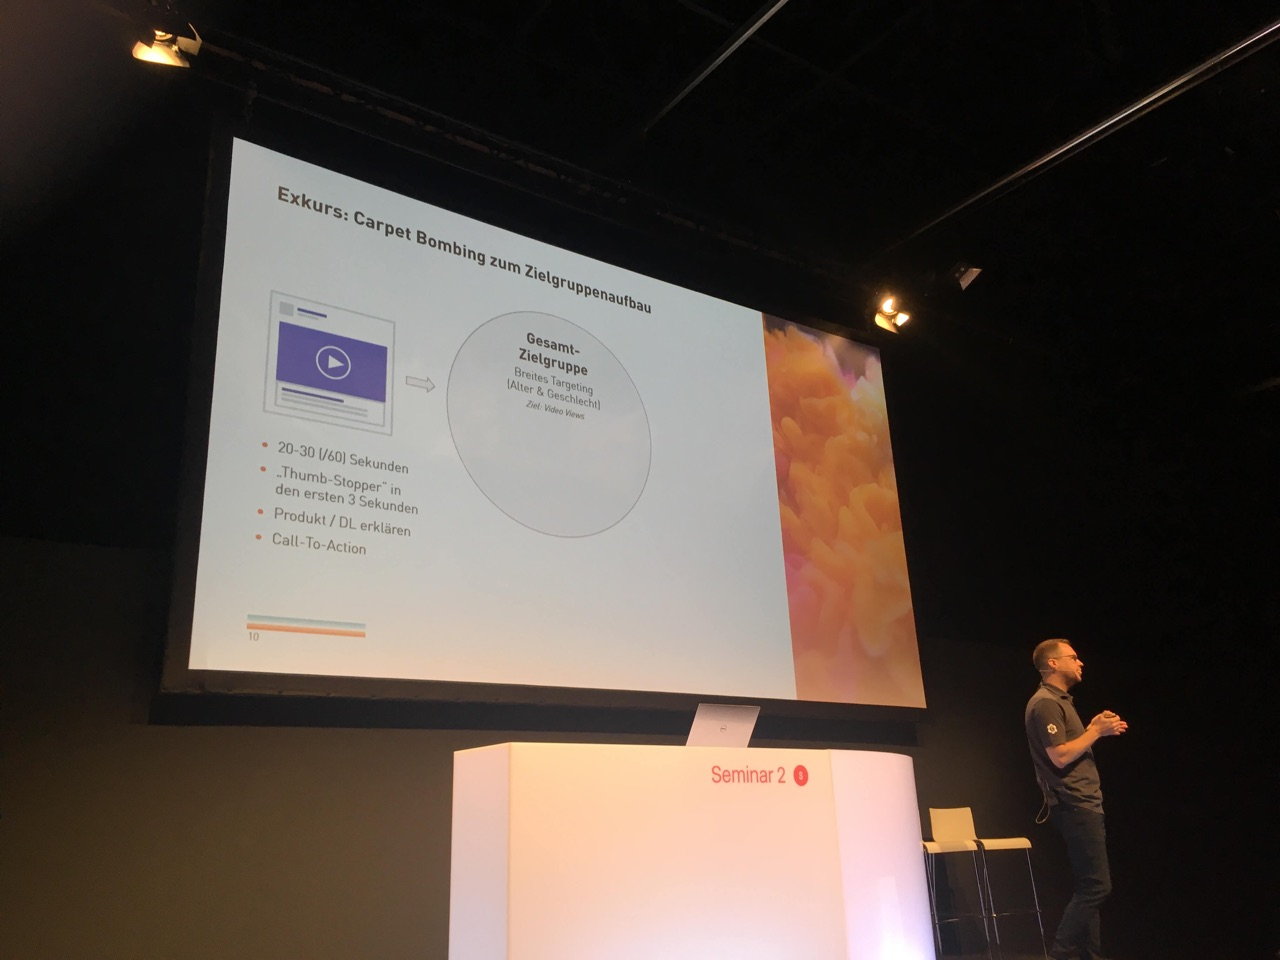 Aclewe bei dmexco 2019 Seminar zu Facebook Advertising